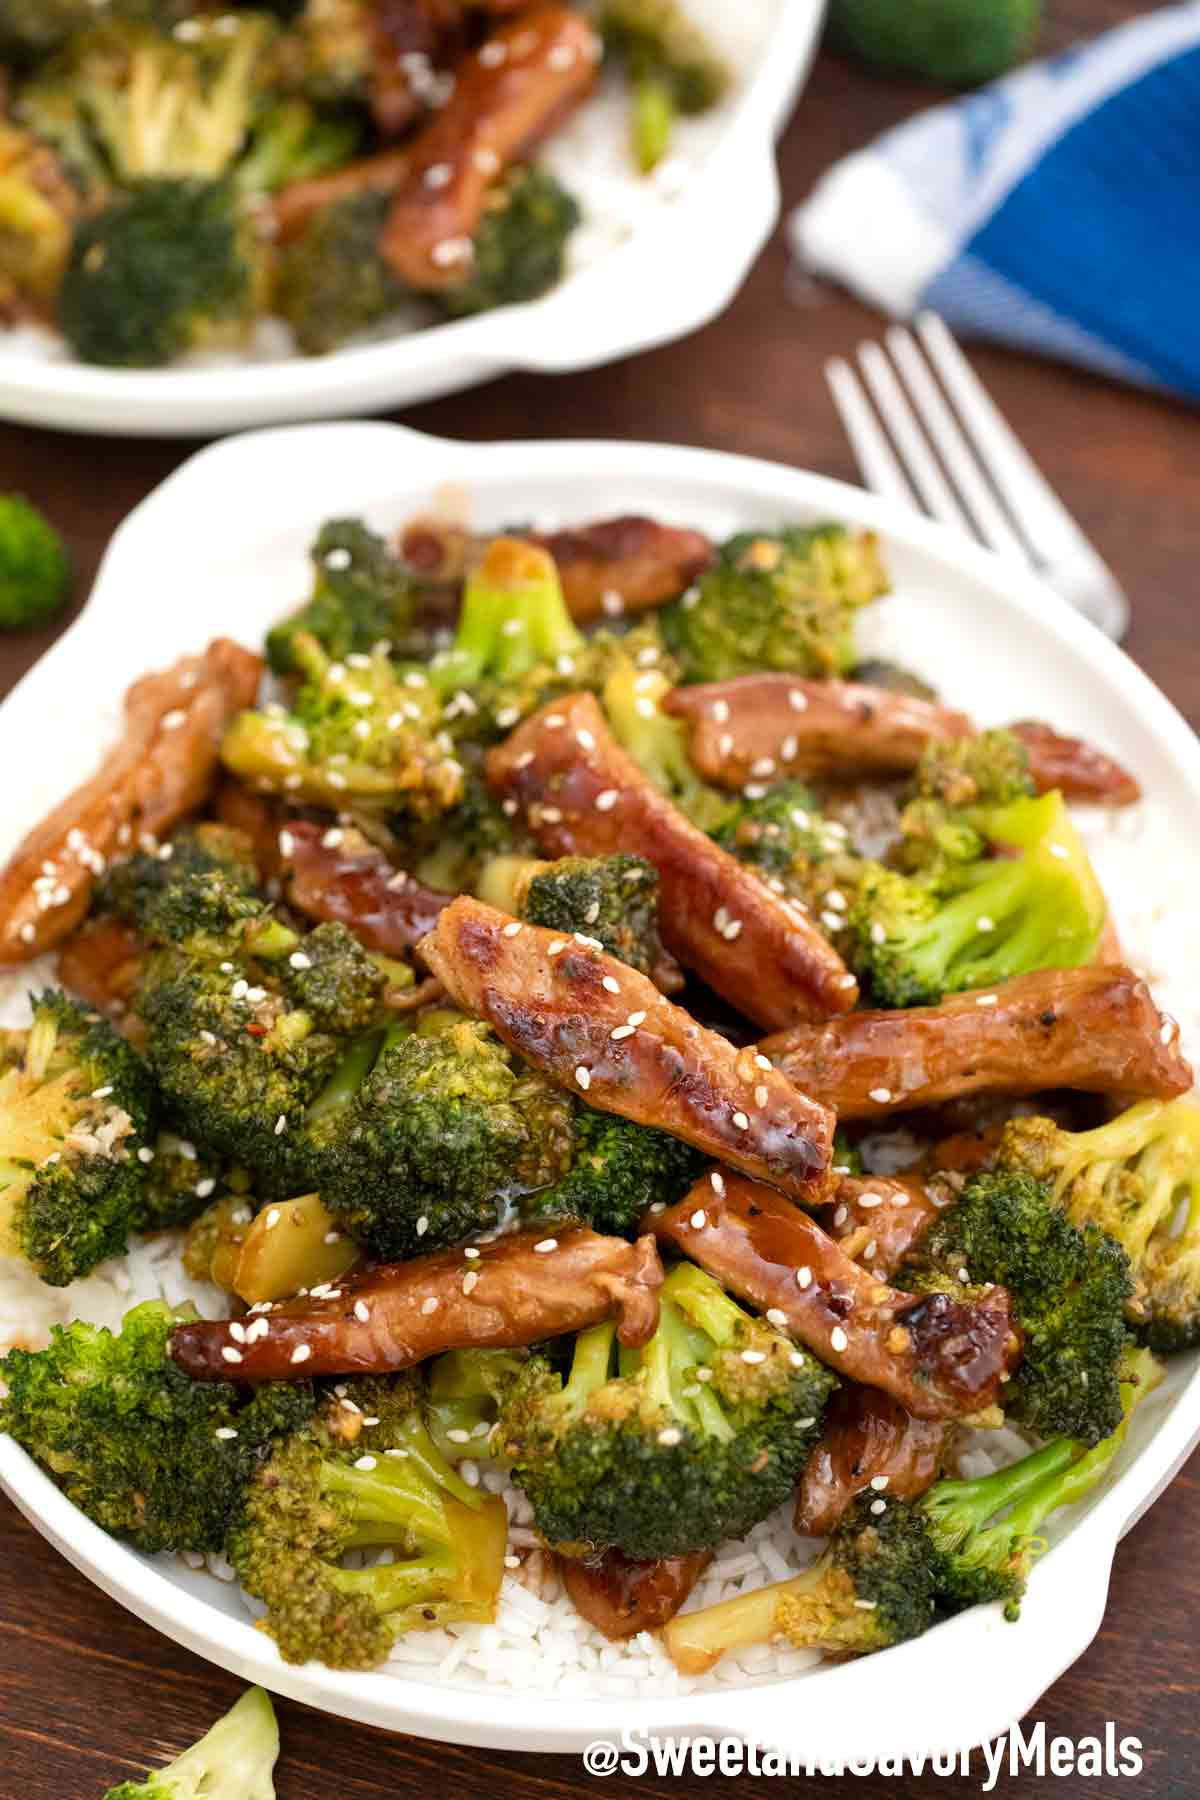 Panda Express Beef And Broccoli Video Sweet And Savory Meals